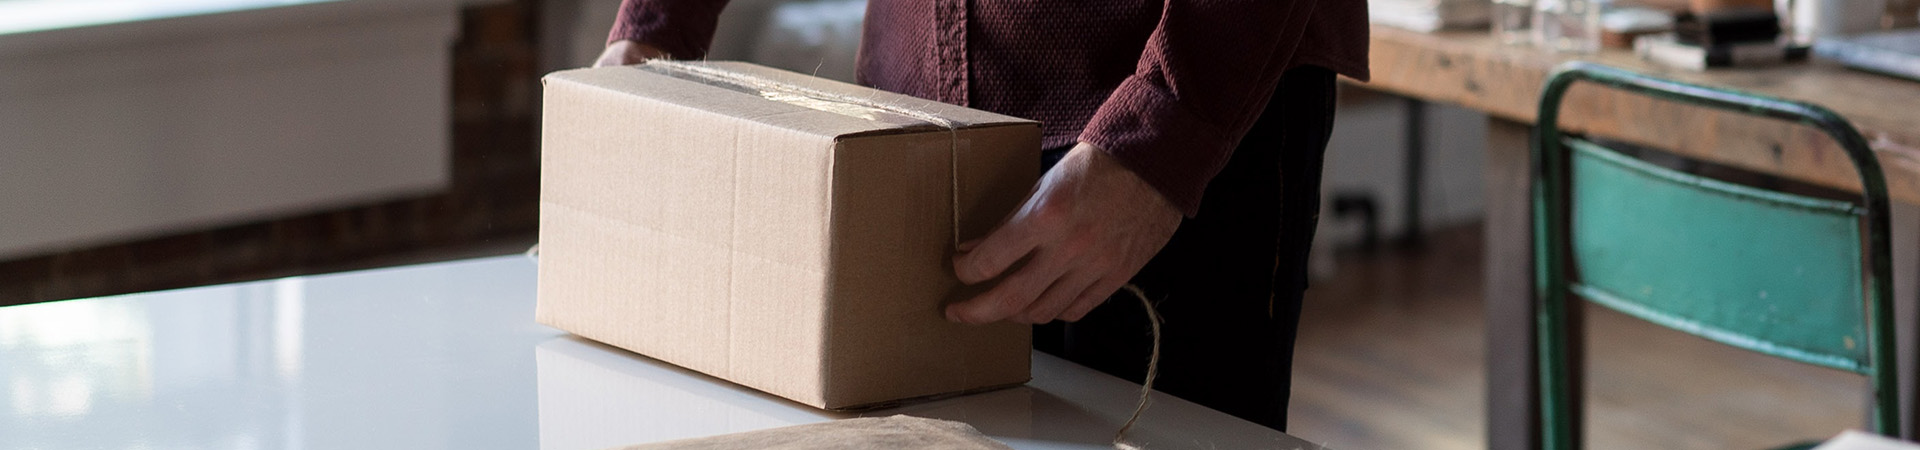 wrapping-package